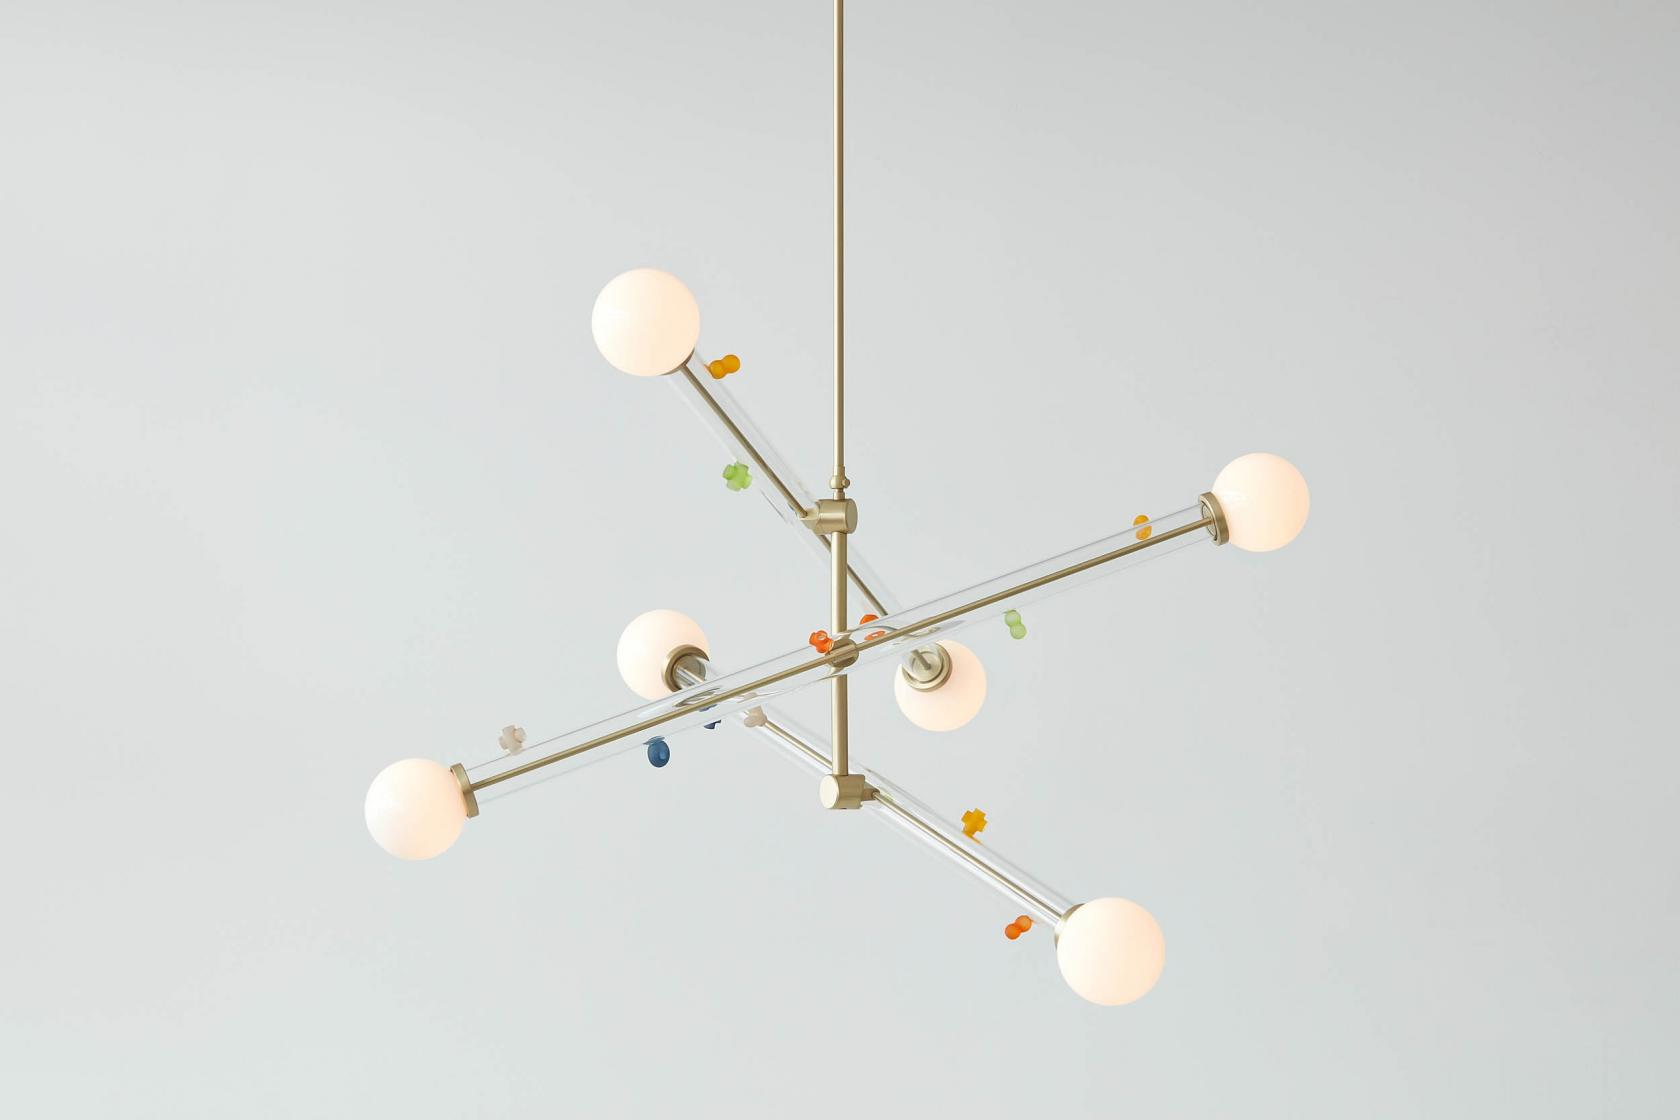 The 'Little World' chandelier with its soft, otherworldly forms.